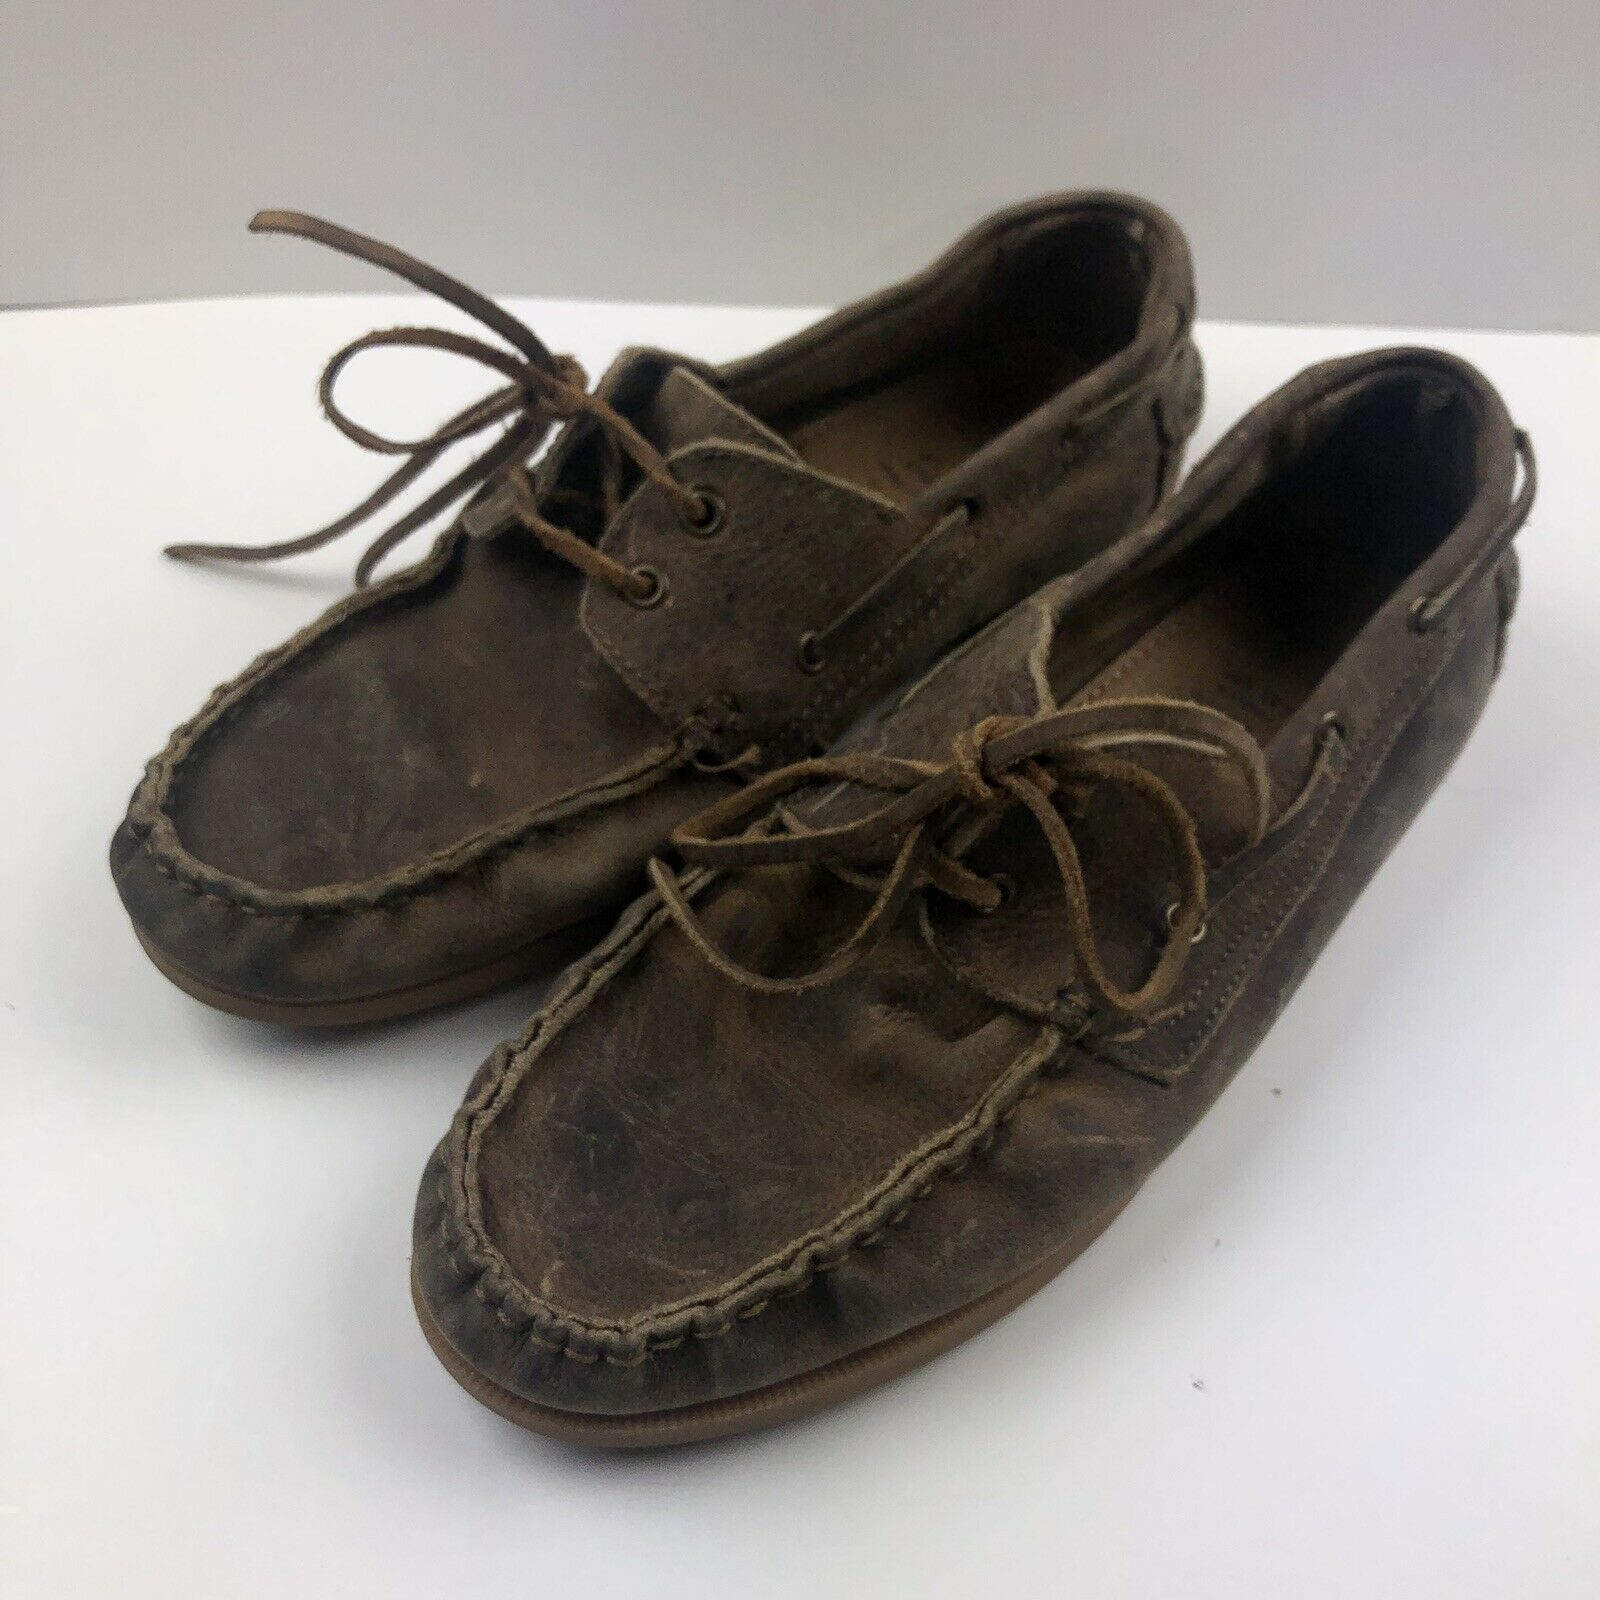 Men's Bed Stu marrón Distressed Leather Boat zapatos  Talla 11